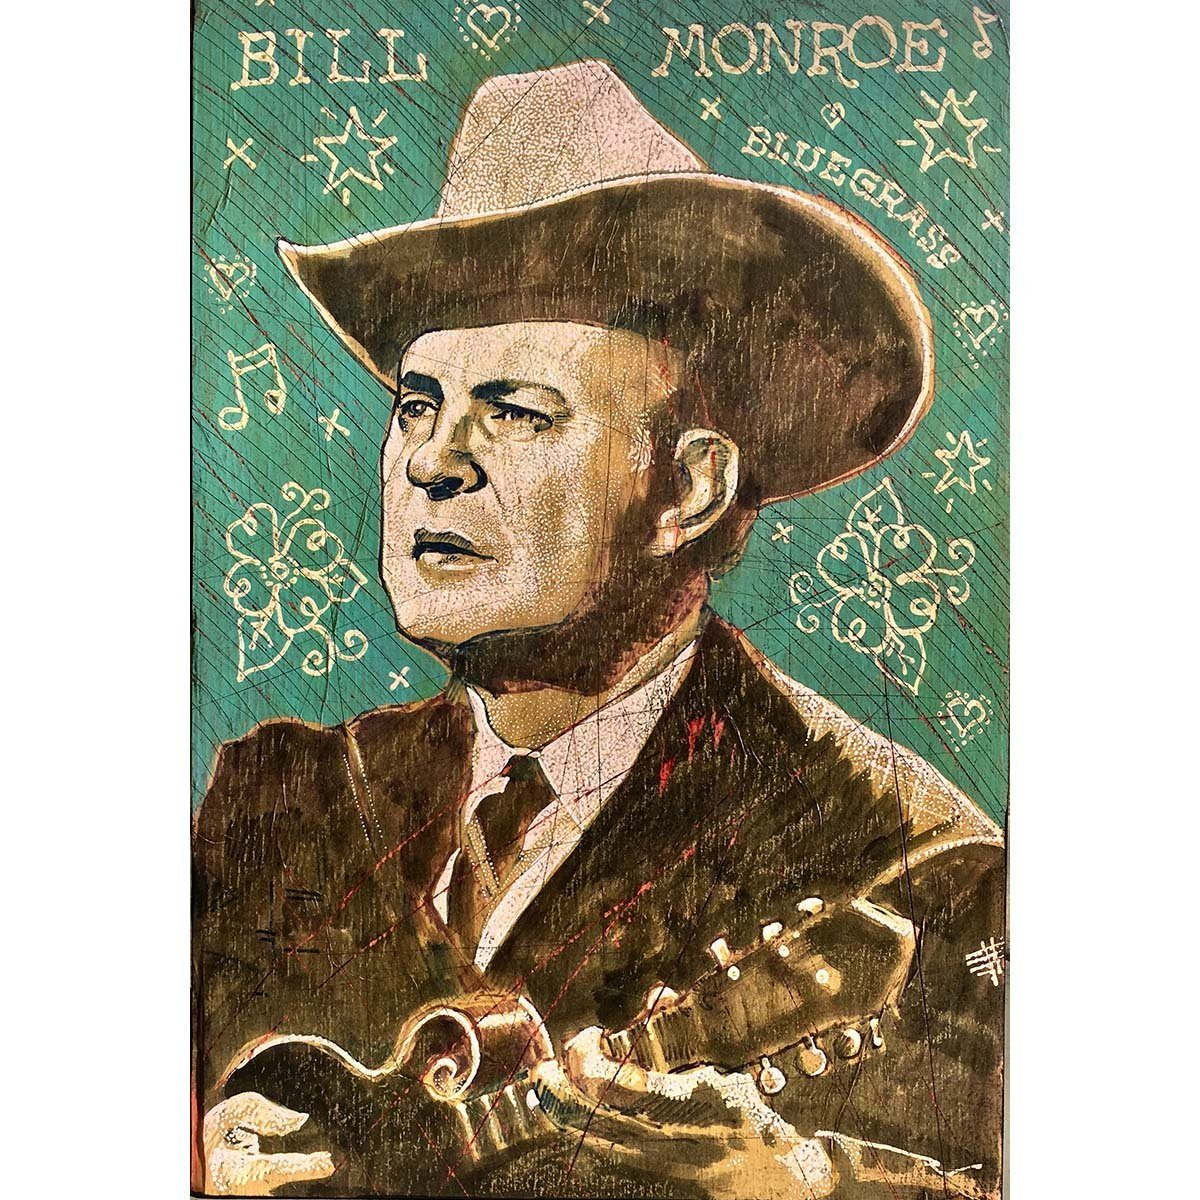 Bill Monroe - Jon Langford - Yard Dog Art